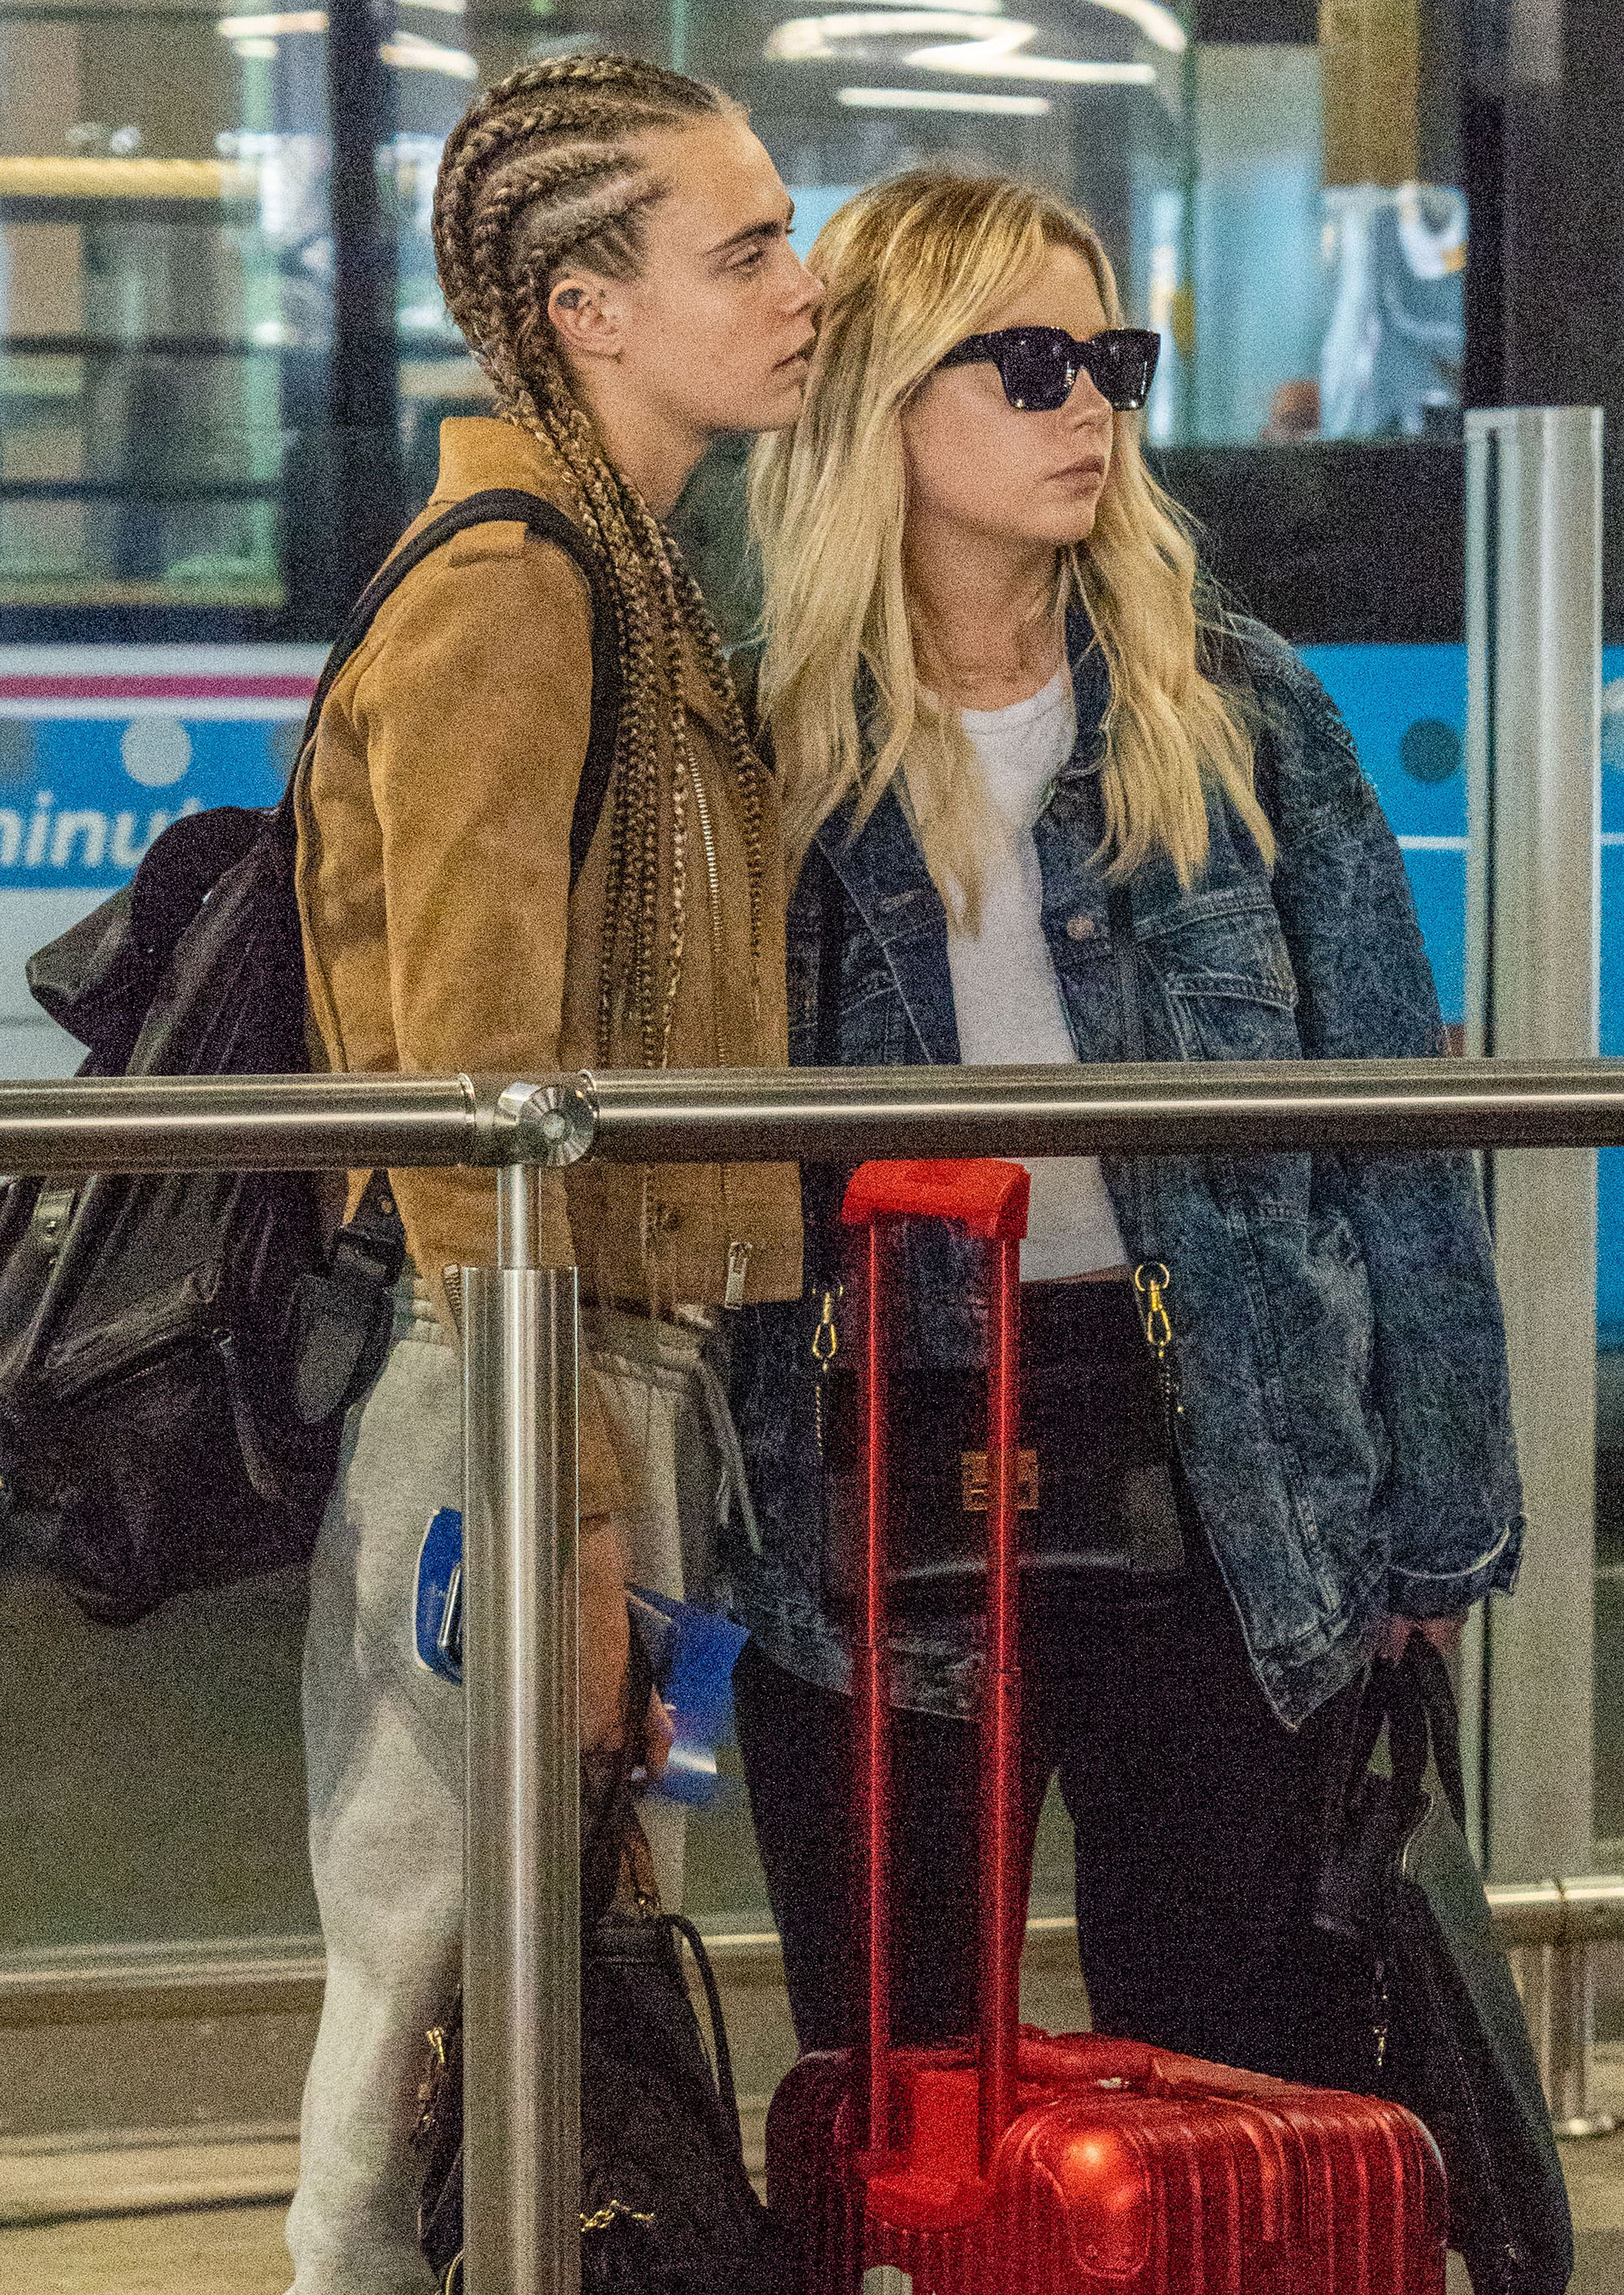 Pretty Little Liars Star Ashley Benson And Cara Delevingne Spotted